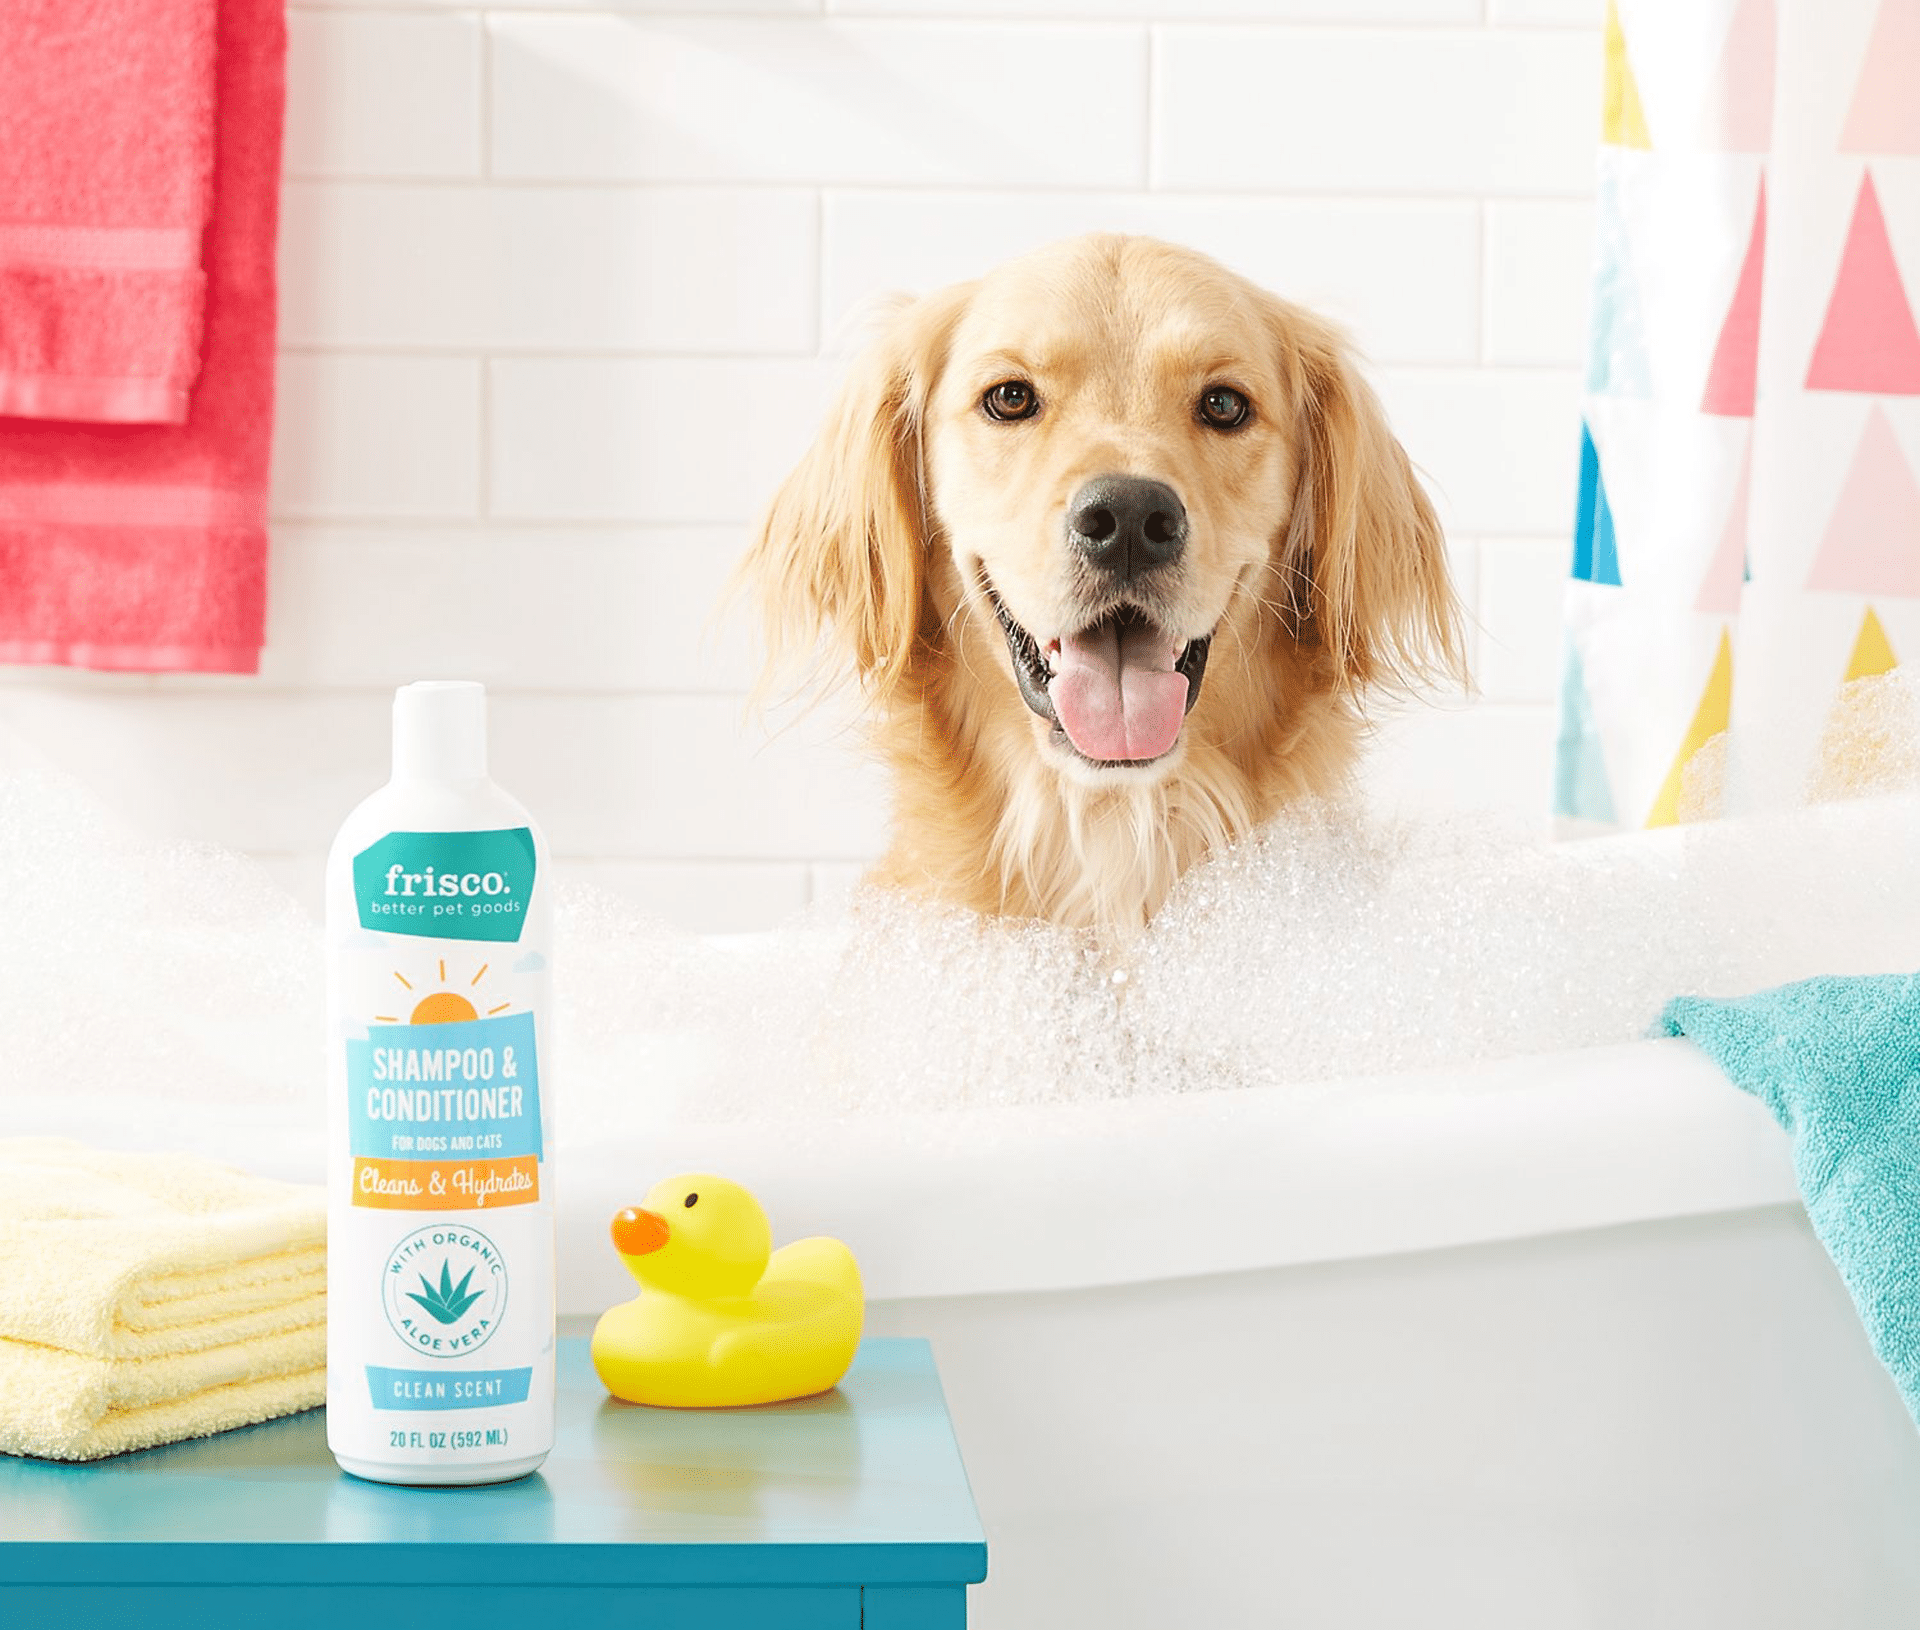 Frisco-2-in-1-Shampoo-&-Conditioner-with-Organic-Aloe-for-Dogs-&-Cats,-Clean-Scent-3